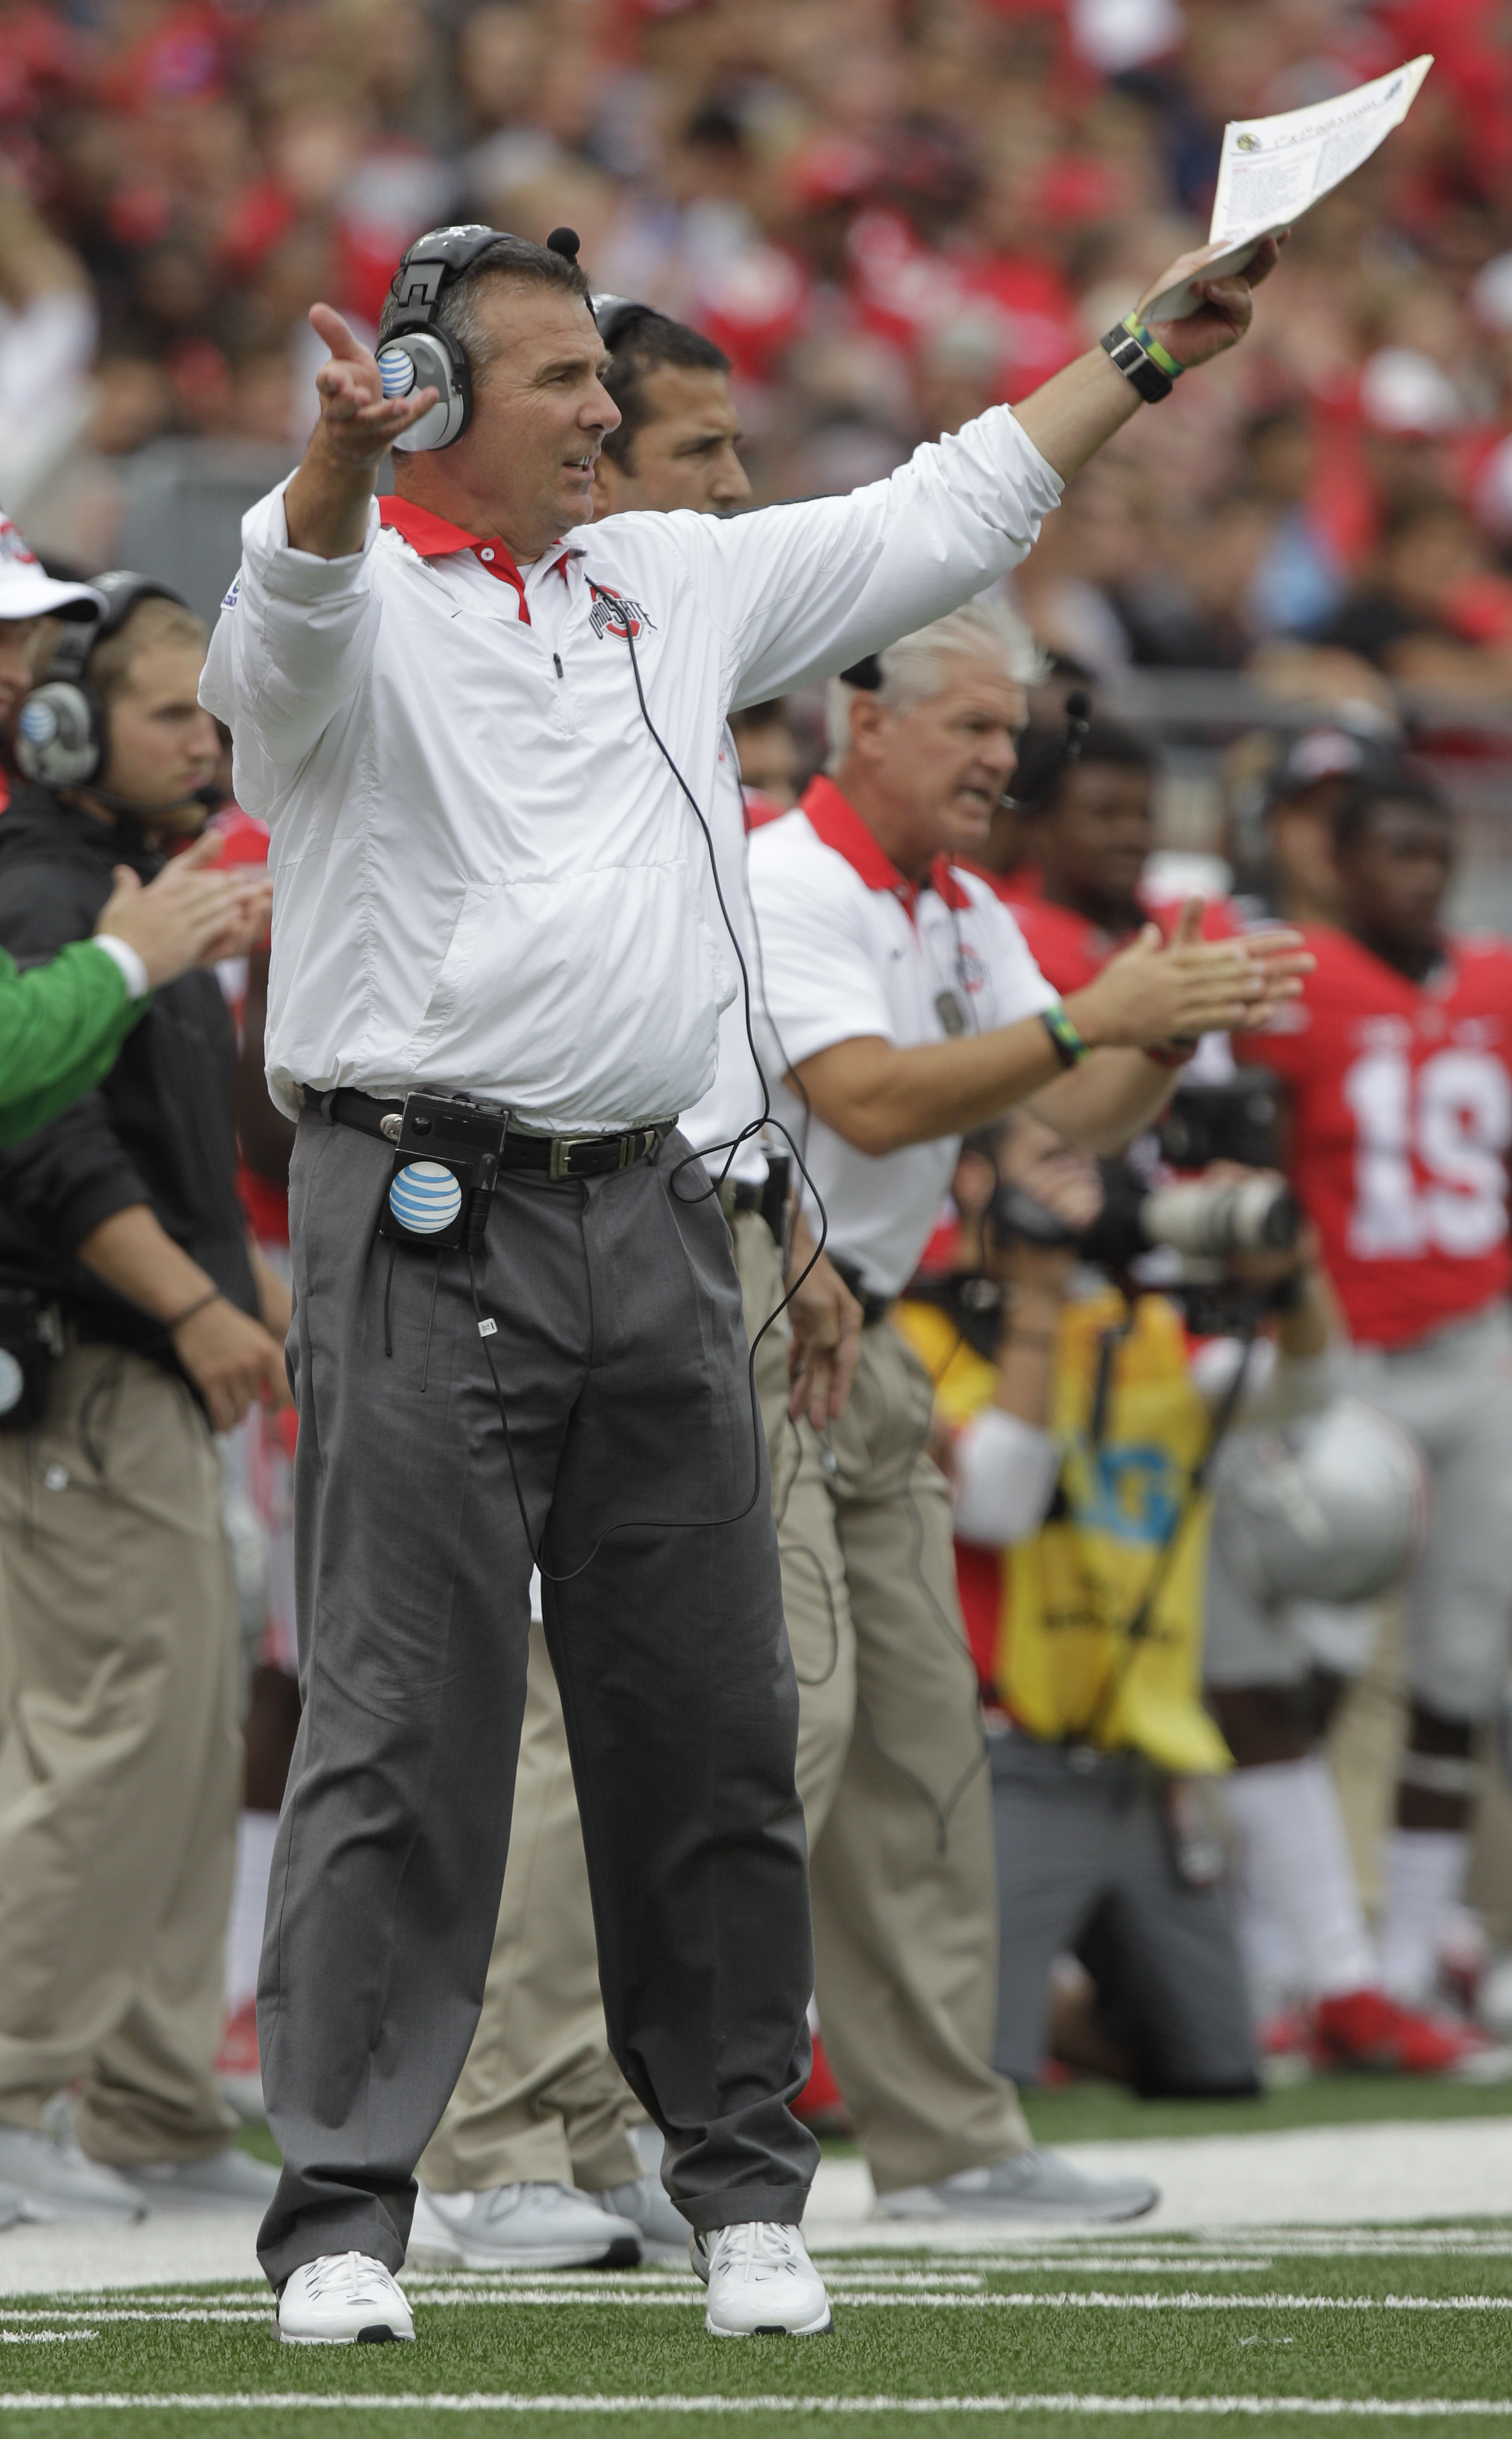 Ohio State head coach Urban Meyer shouts to his team during the first quarter of their NCAA college football game against Western Michigan, Saturday, Sept. 26, 2015, in Columbus, Ohio. (AP Photo/Jay LaPrete)